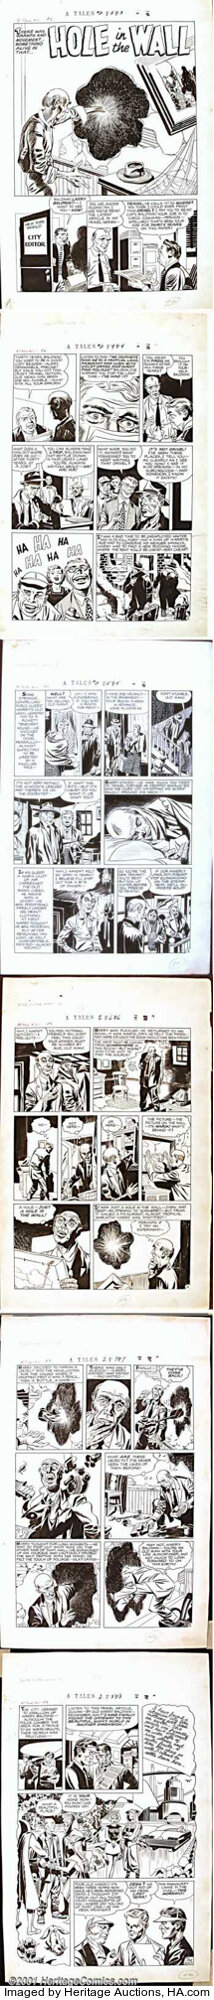 """Jack Kirby - Original Art for """"Hole in the Wall"""" from Alarming Tales #2 - Complete 6-Page Story (Harvey Publications, 1957)...."""